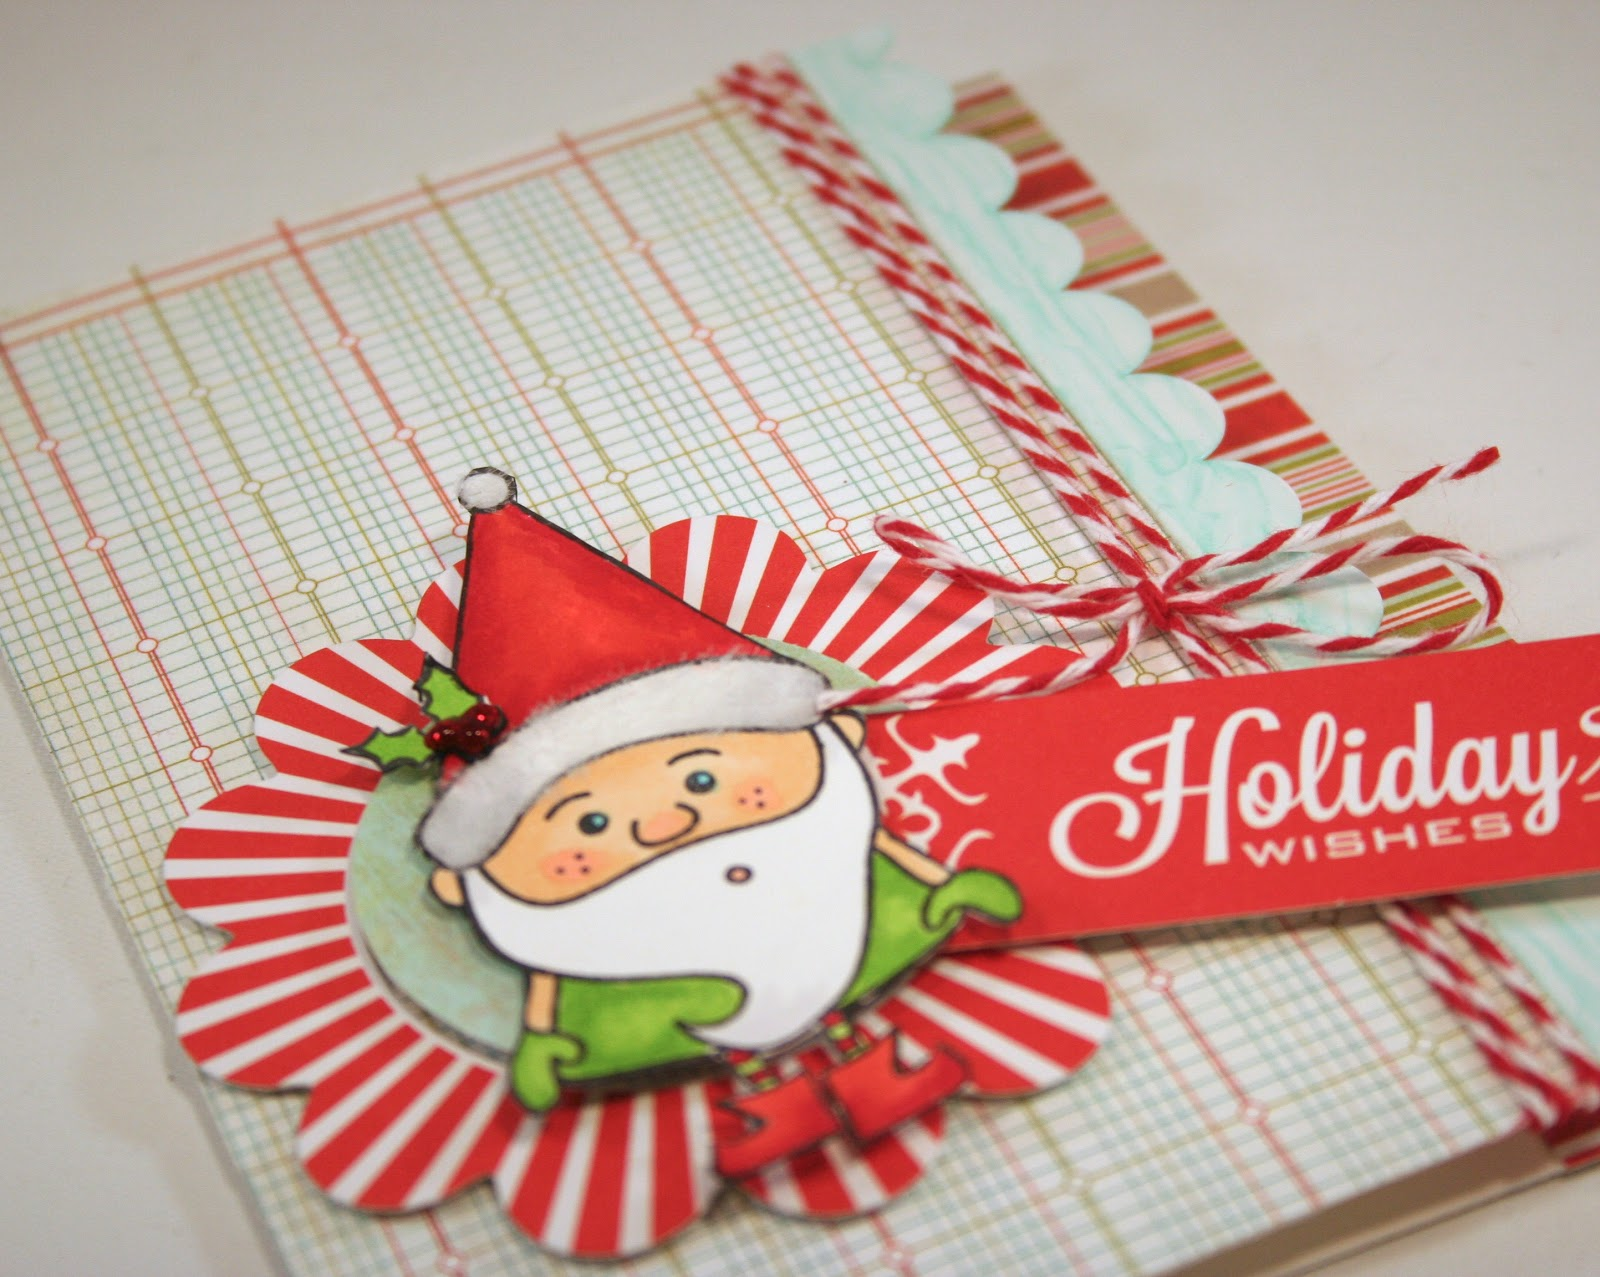 Gnome For The Holidays  021.jpg